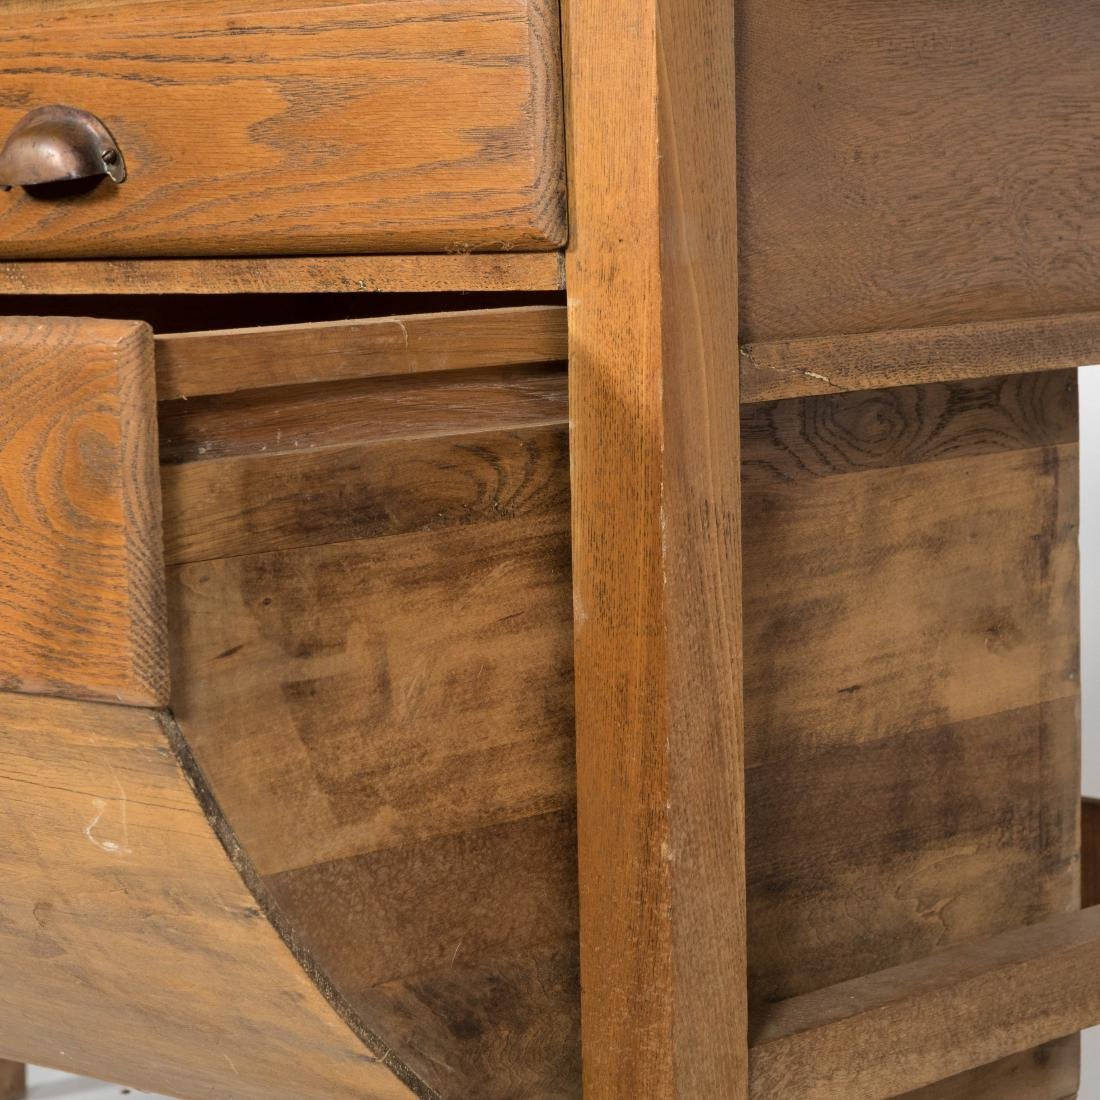 Hoosier Cabinet and Sewing Cabinet - 4